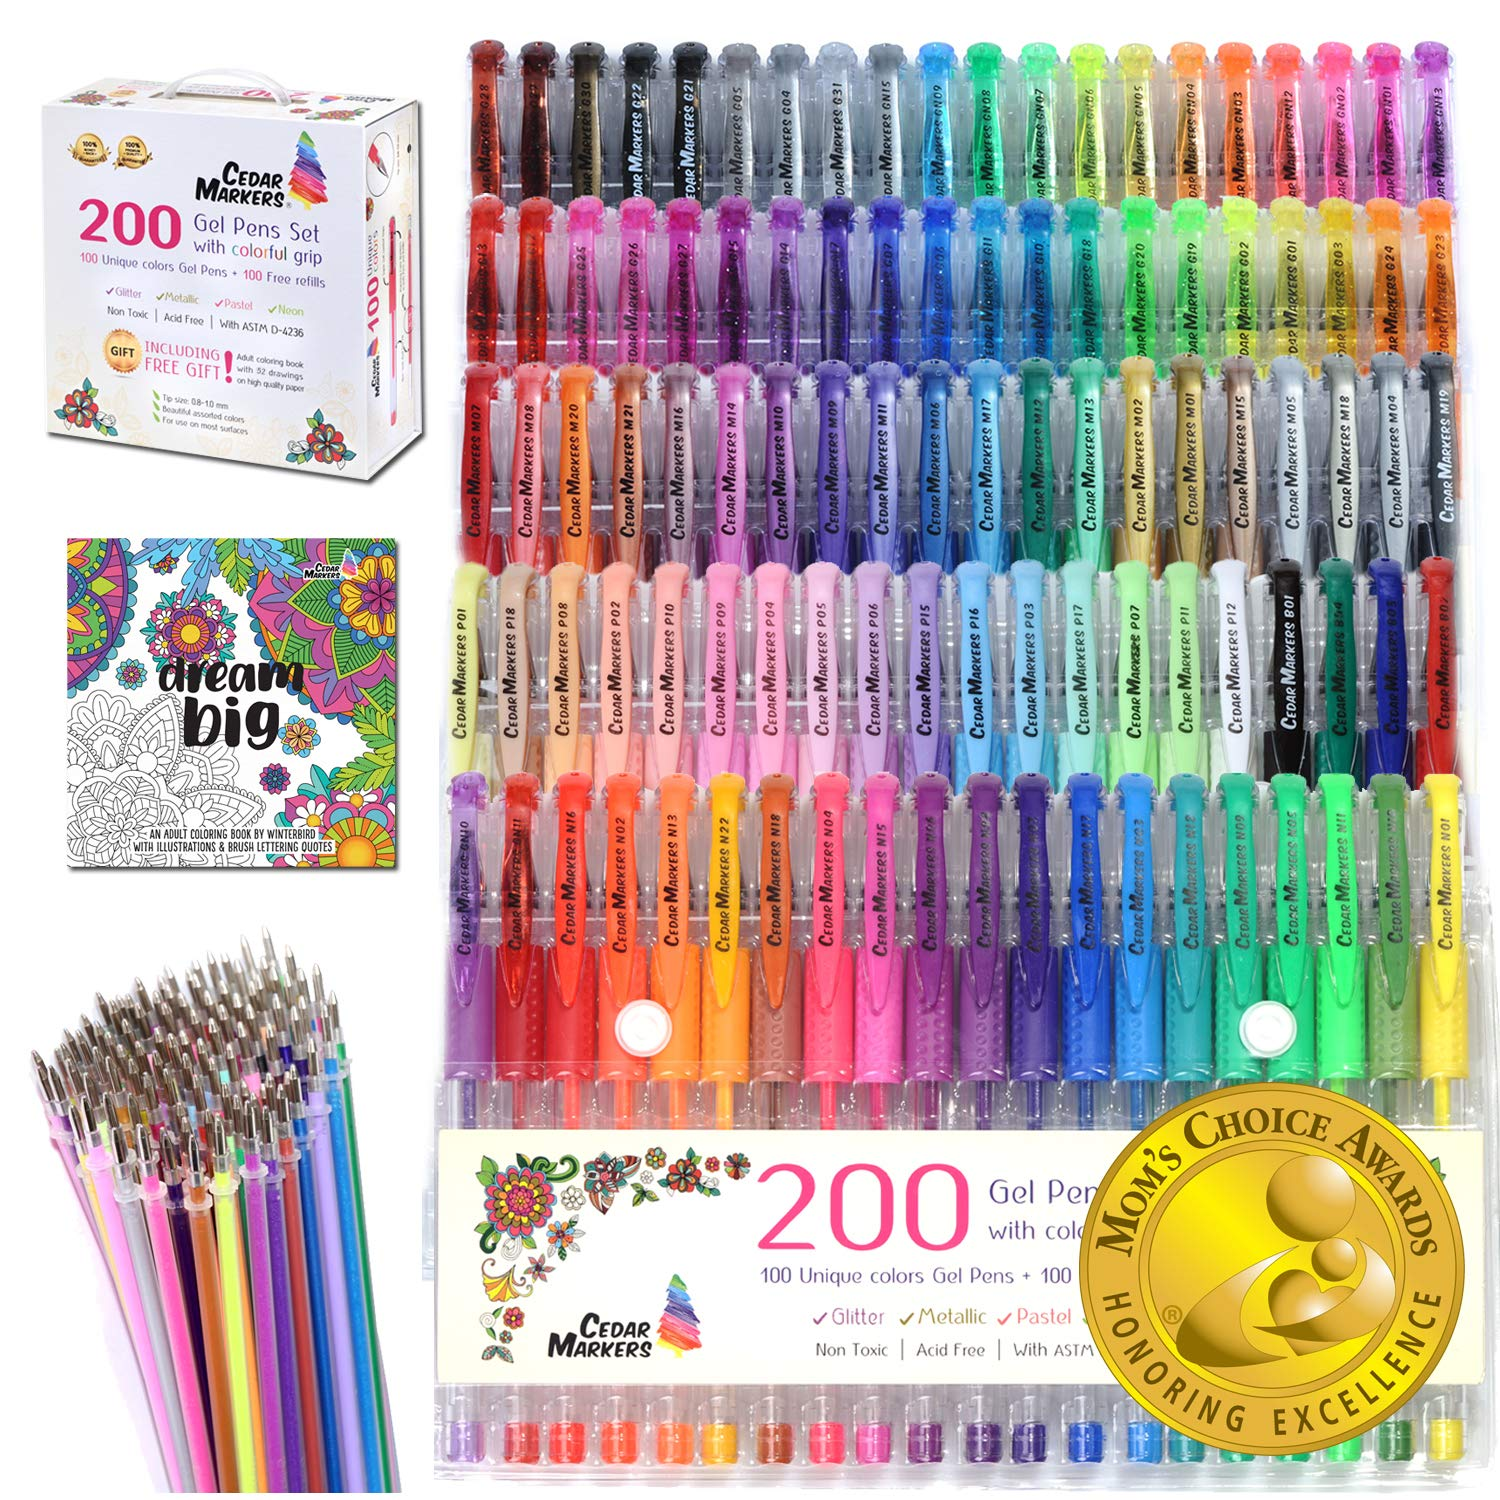 Cedar Markers Gel Pens. 200 Set with Unique Adult Coloring Book. 100 Pens Plus 100 Refills. Color Pens with Grip. Neon, Glitter, Metallic, Pastel Colors No Duplicates. Drawing Pens for Bullet Journal. by Cedar Markers (Image #9)